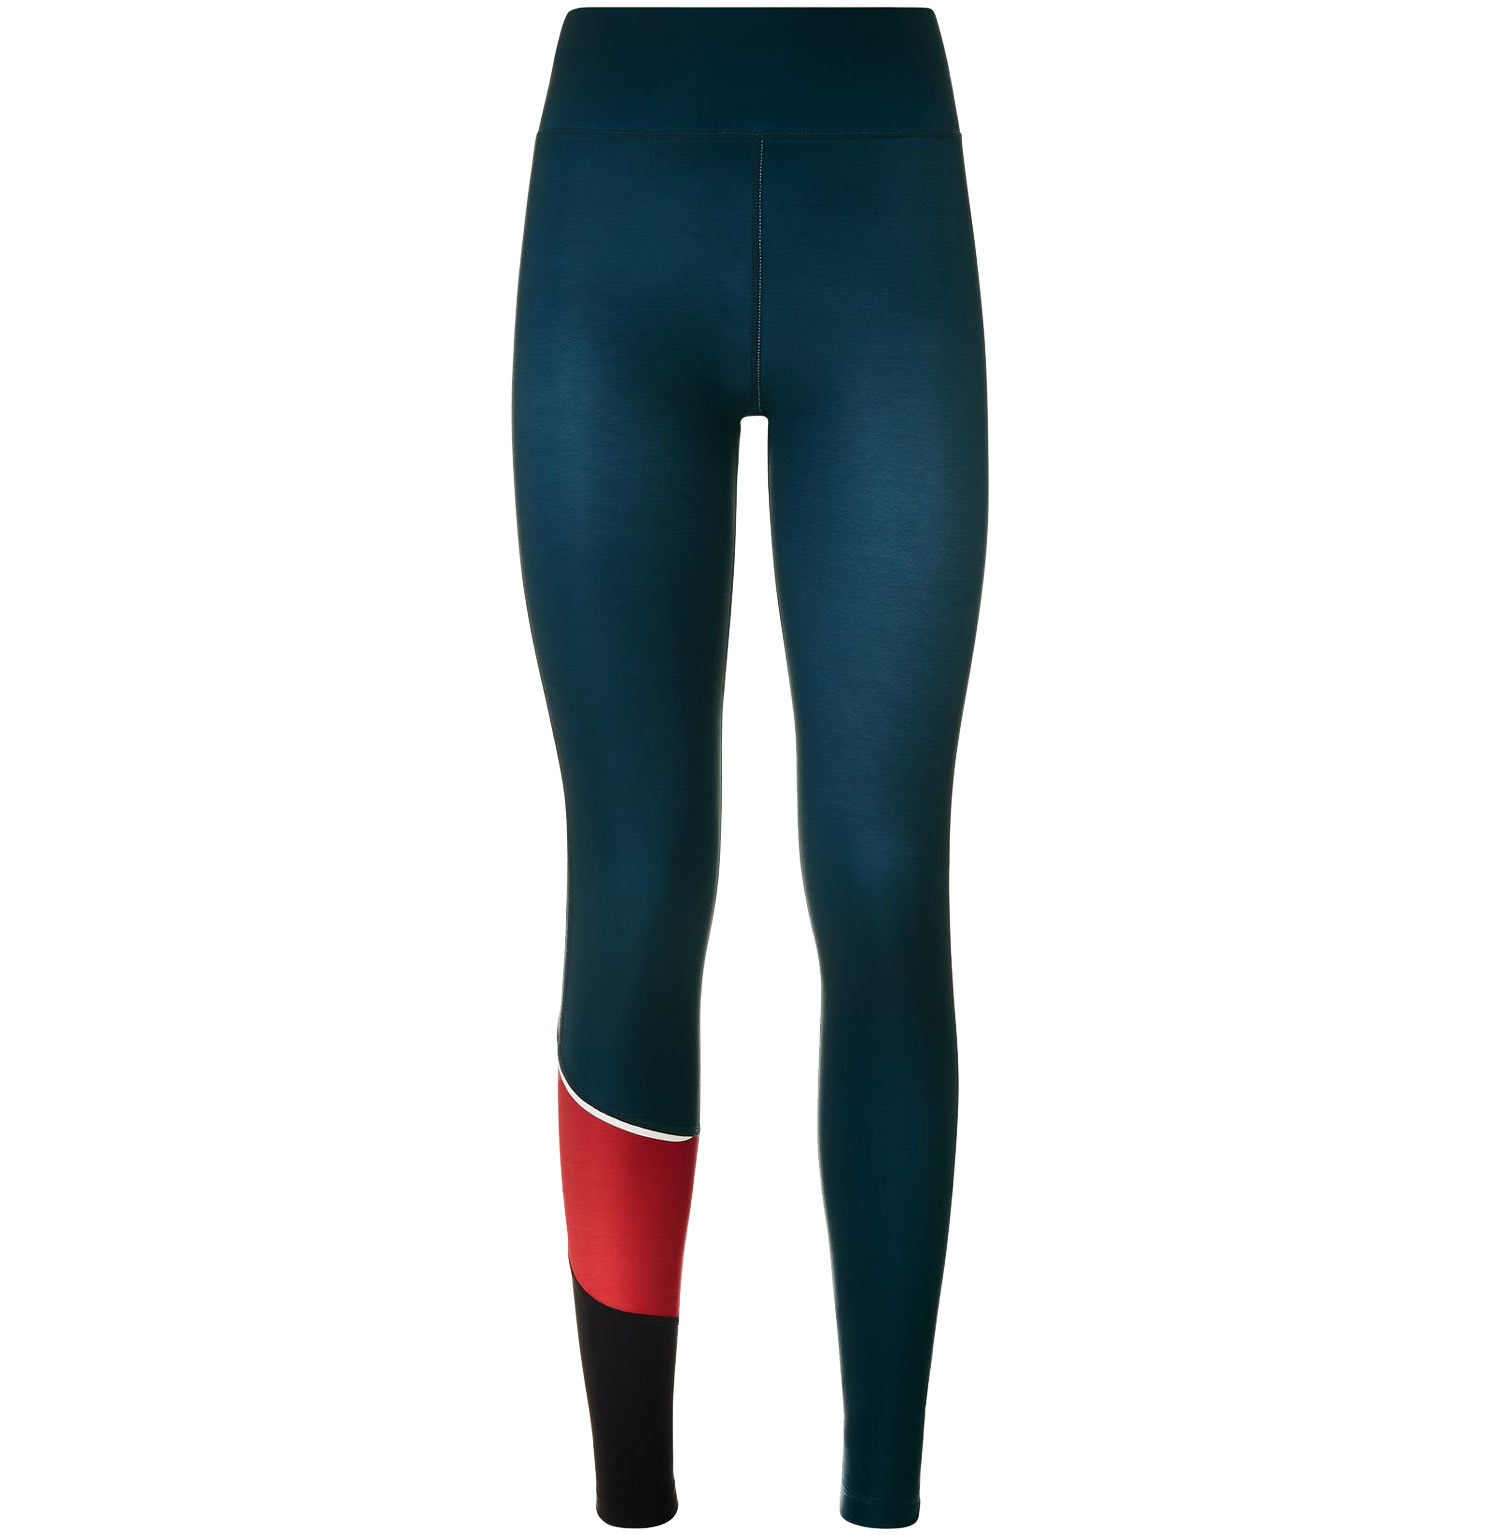 Sweaty Betty Thermodynamic Run Leggings, £95